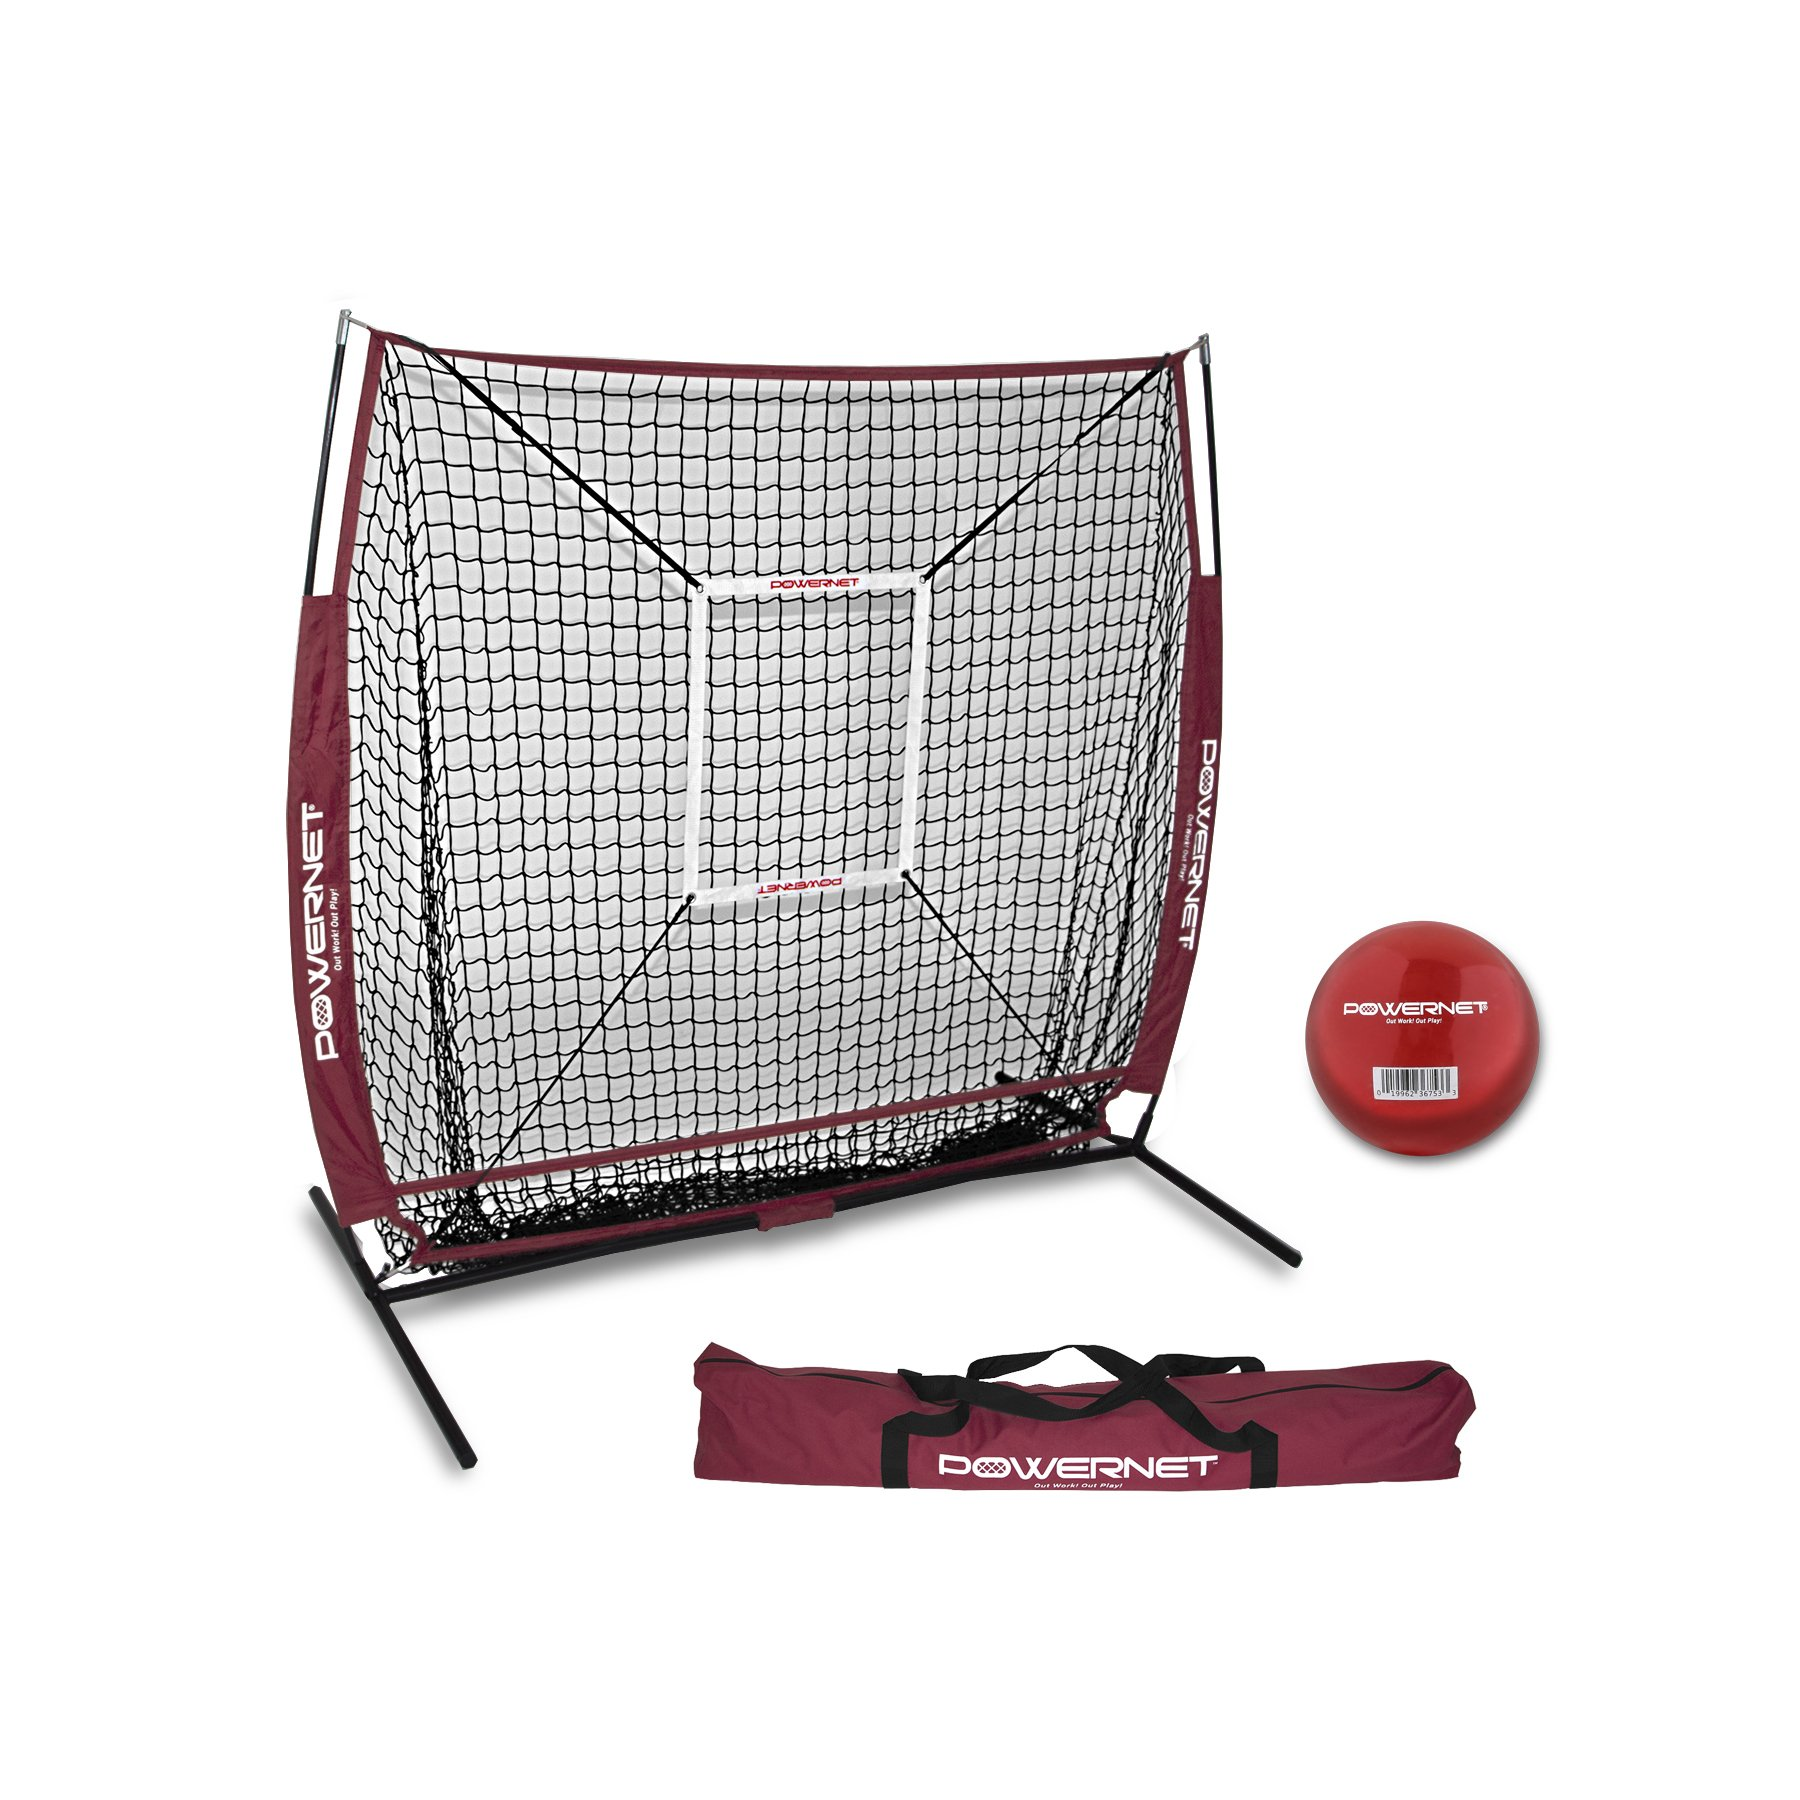 PowerNet 5x5 Practice Net + Strike Zone + Weighted Training Ball Bundle (Maroon) | Baseball Softball Coaching Aid | Compact Lightweight Ultra Portable | Team Color | Batting Screen by PowerNet